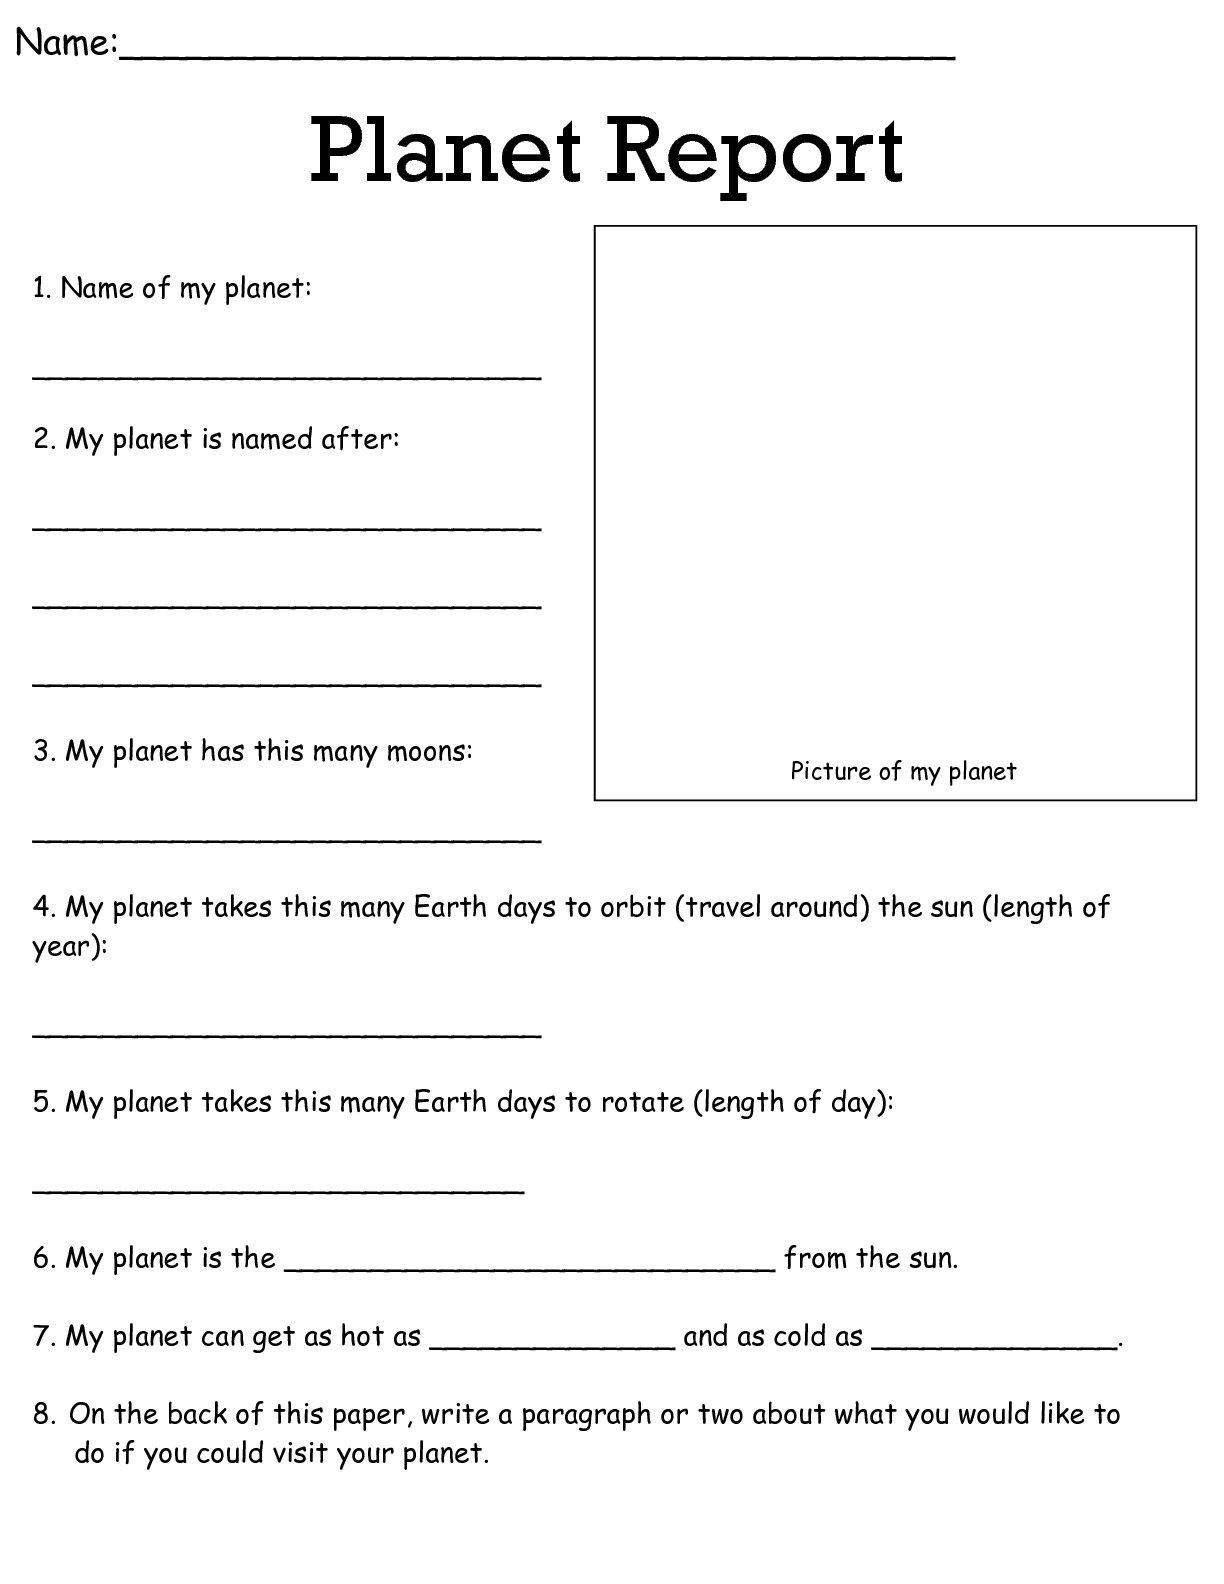 Job Worksheets 5Th &6Th | Science Worksheets Science Worksheets | Grade 3 Social Studies Worksheets Printable